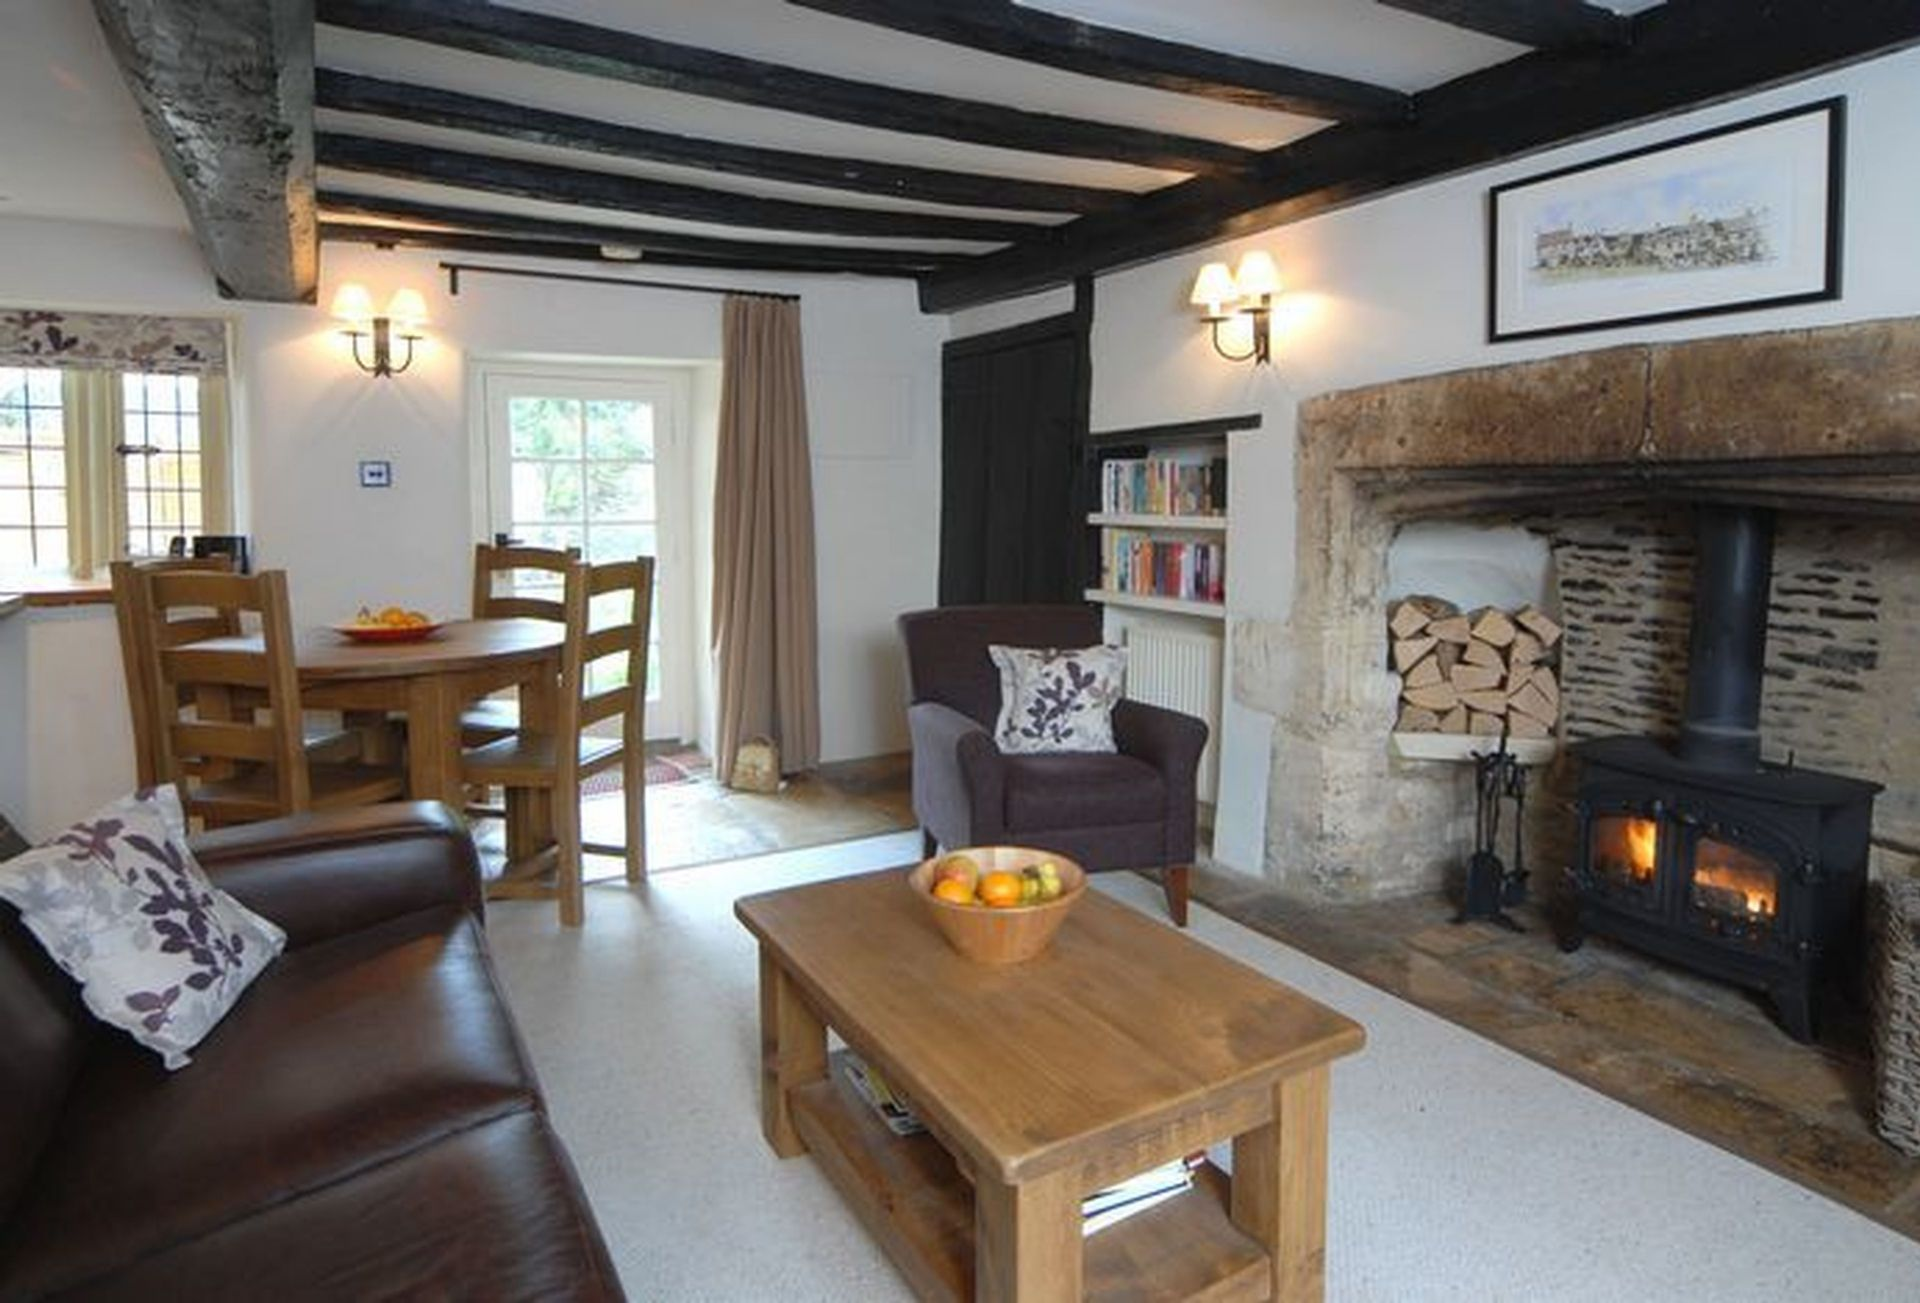 Another aspect of the Sitting Room with the dining area